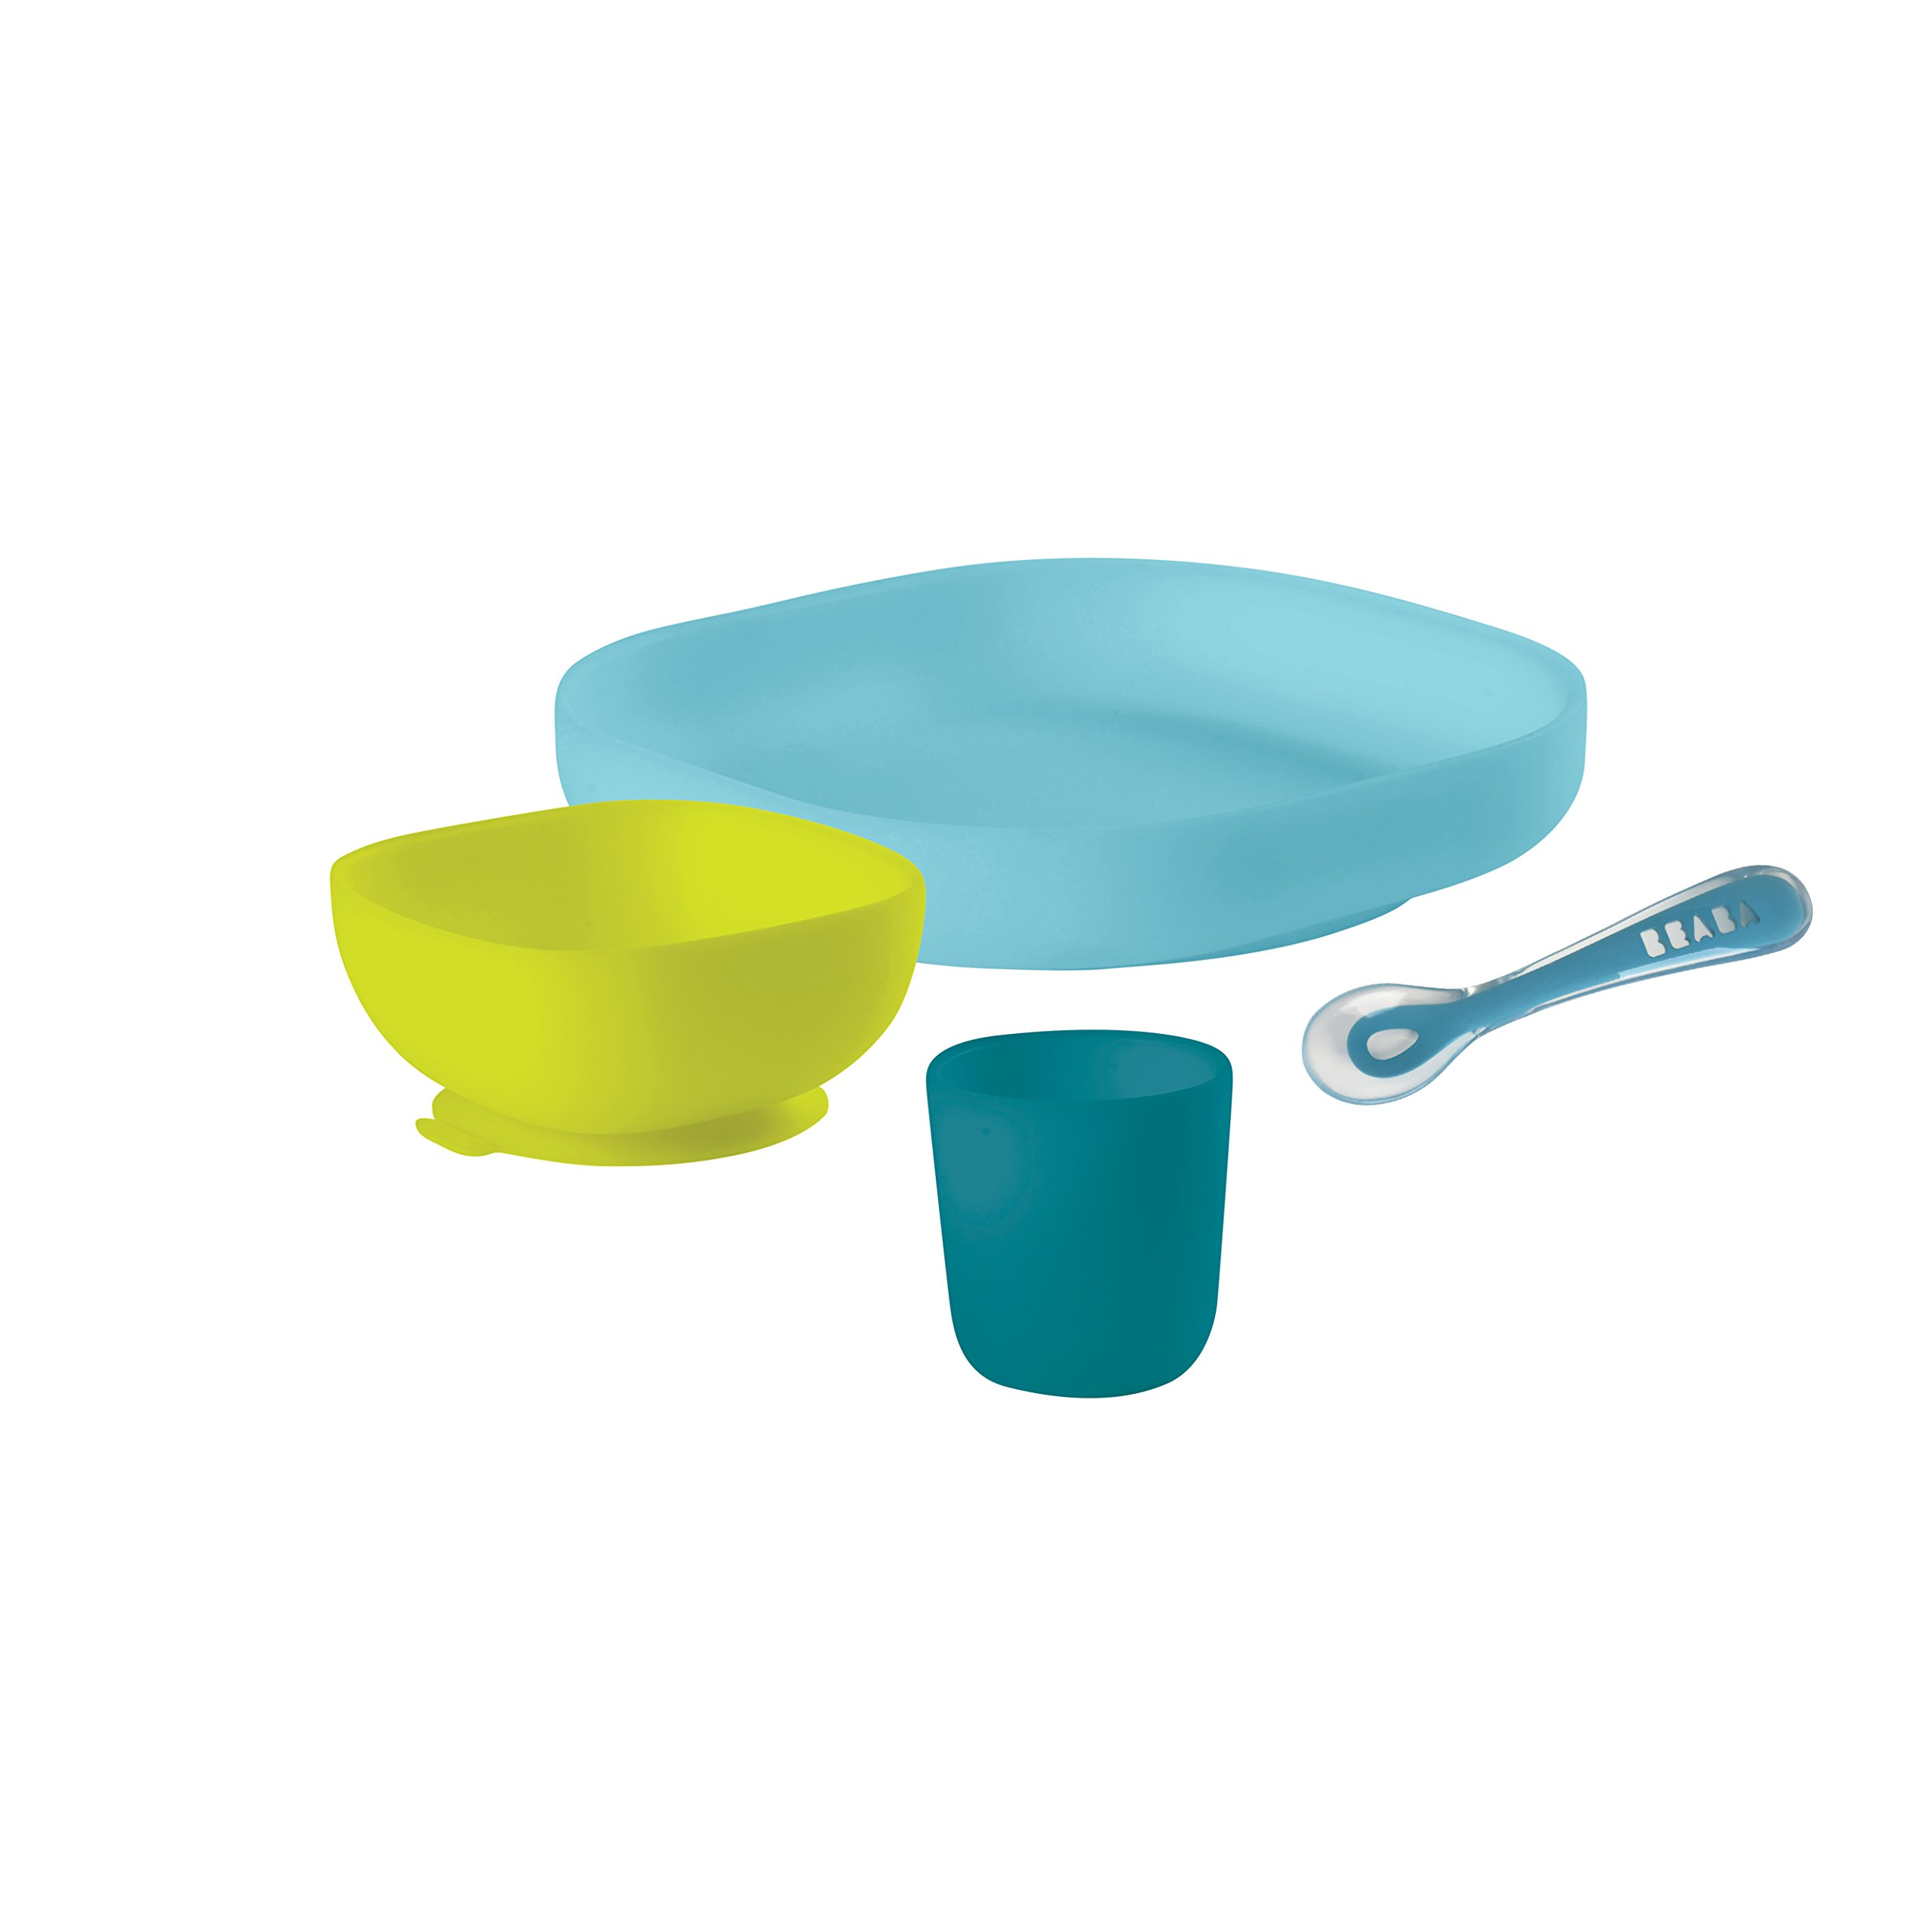 BEABA Silicone 4-Piece Meal Set - Easy to Clean - Dishwasher and Microwave Safe - Soft, Unbreakable, Non-Slip Suction Bottom - Includes Plate, Bowl, Cup and 2nd Stage Silicone Spoon (Peacock)